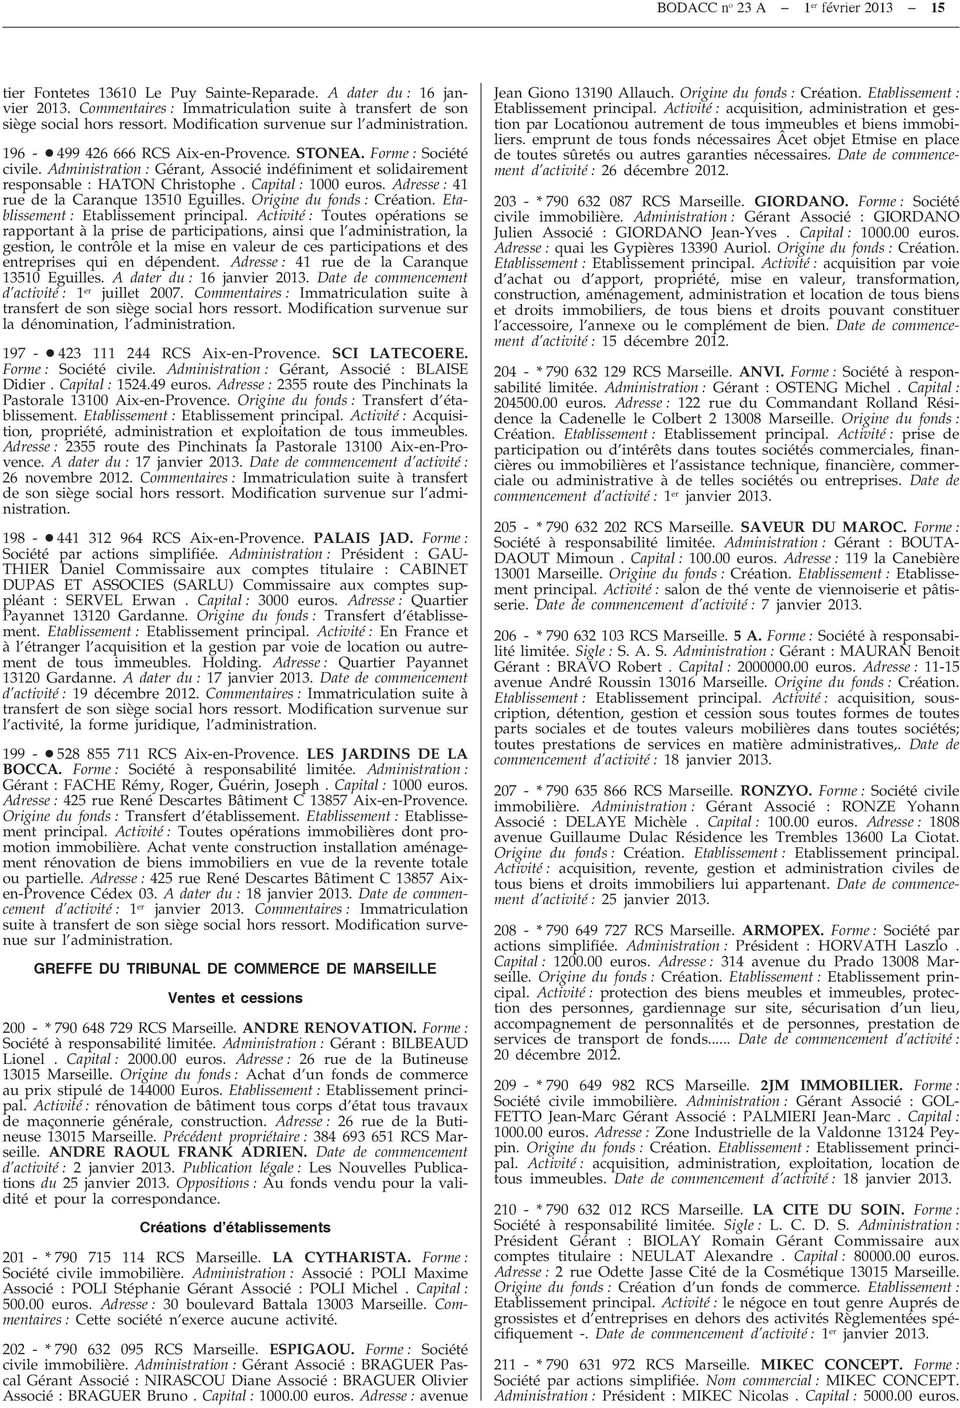 BODACC BULLETIN OFFICIEL DES ANNEXÉ AU JOURNAL OFFICIEL DE